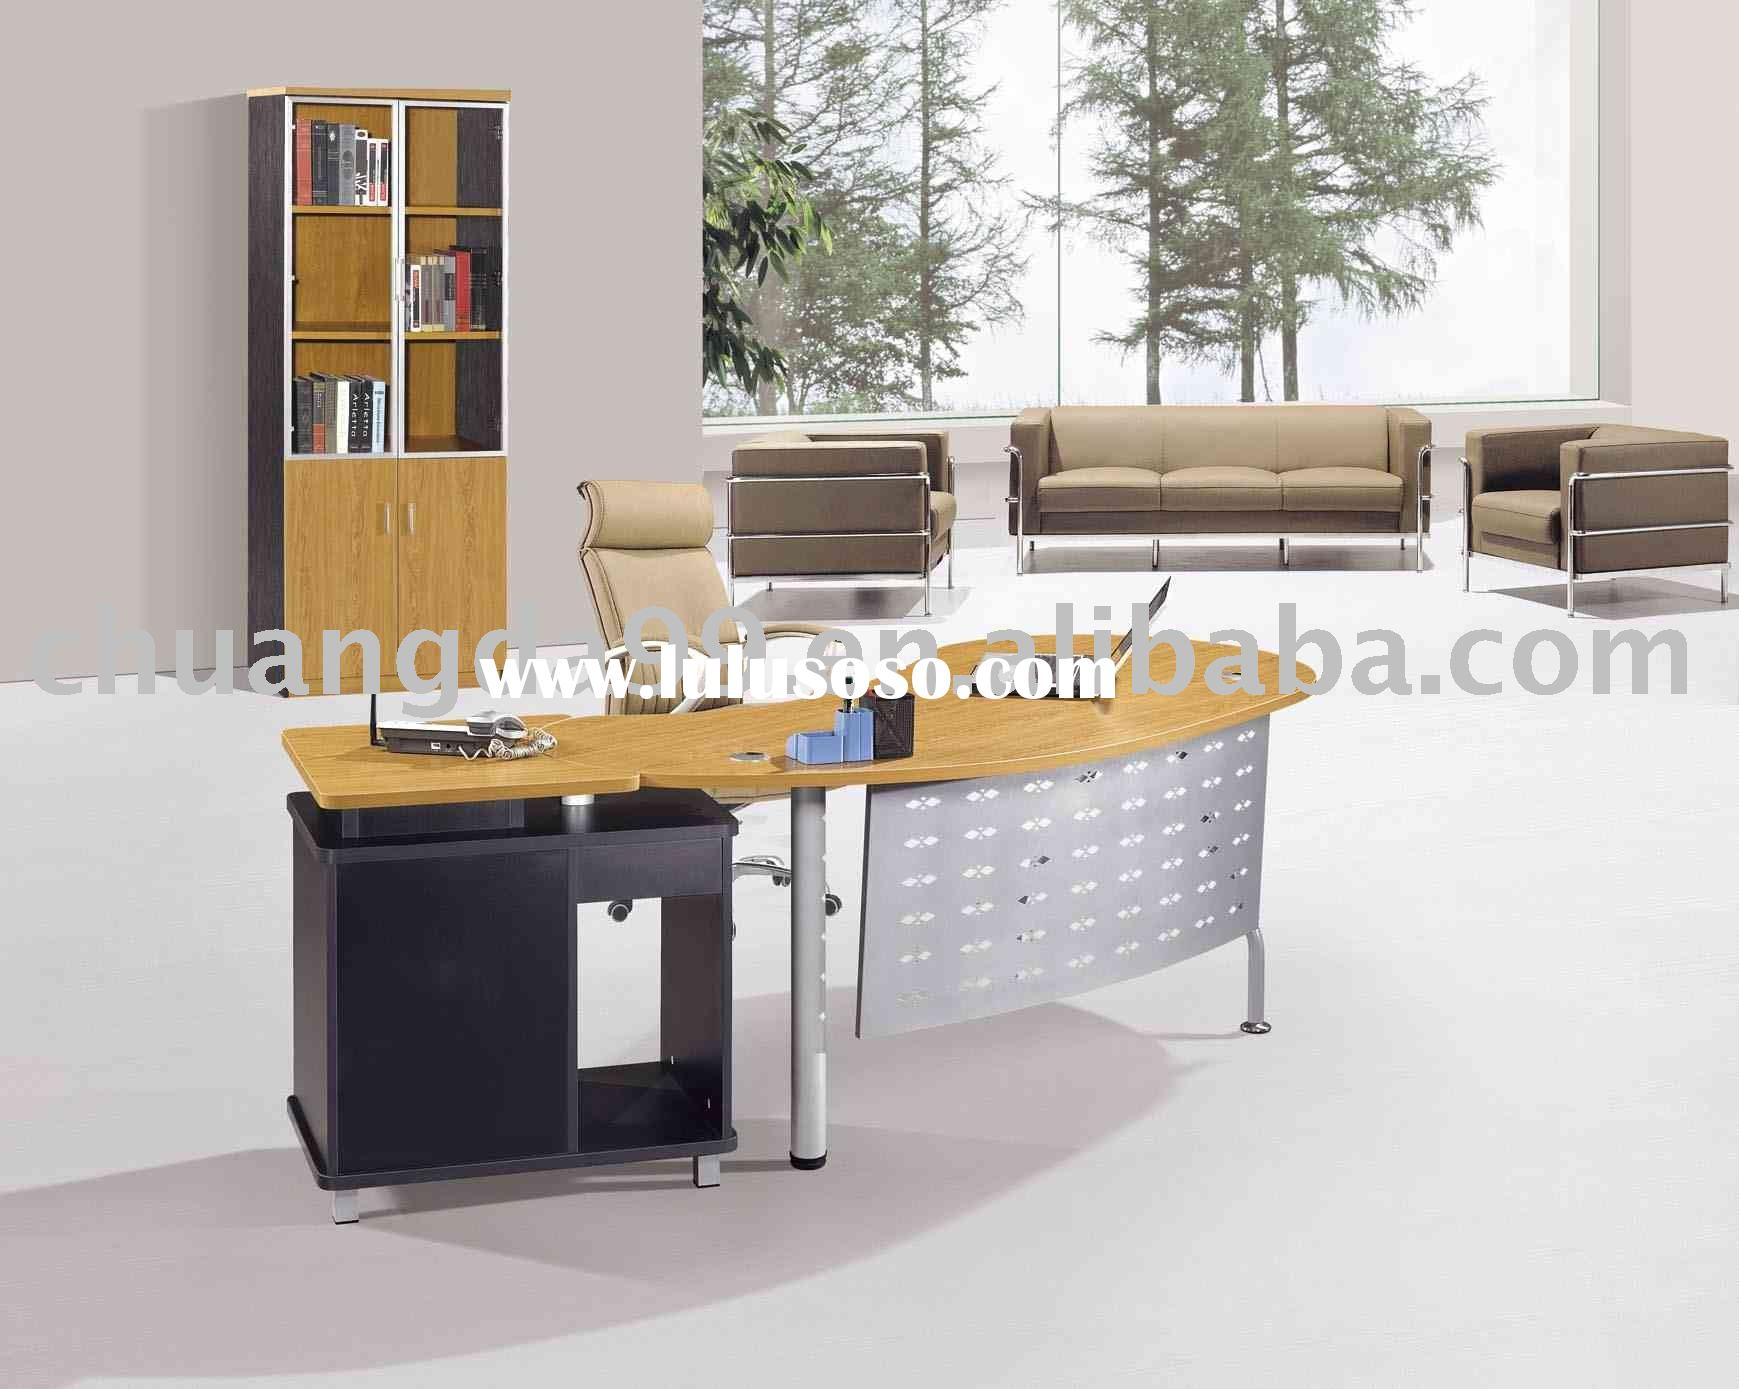 Used office furniture michigan used office furniture for Good office furniture